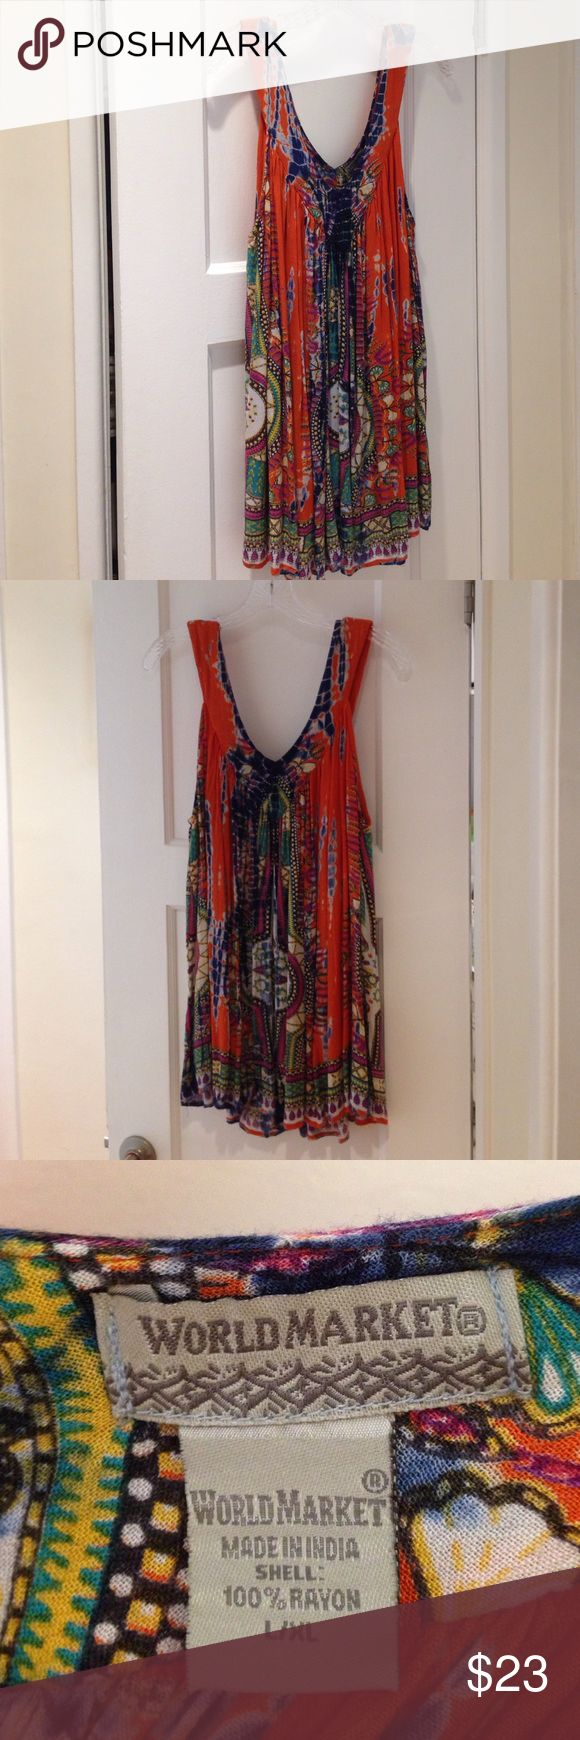 Bohemian Flow Tank Style Woman's Top This World Market bohemian flowy tank style blouse/top has a combined tie dye and Indian pattern that gives it an ethnic look. The flowy style of this top is great for 😉 camouflaging love handles, muffin tops, and or just simply being super comfortable. It's made of 100% rayon, size L/XL. Multicolored in orange, blue, yellow, green, ivory and purple. World Market Tops Tank Tops